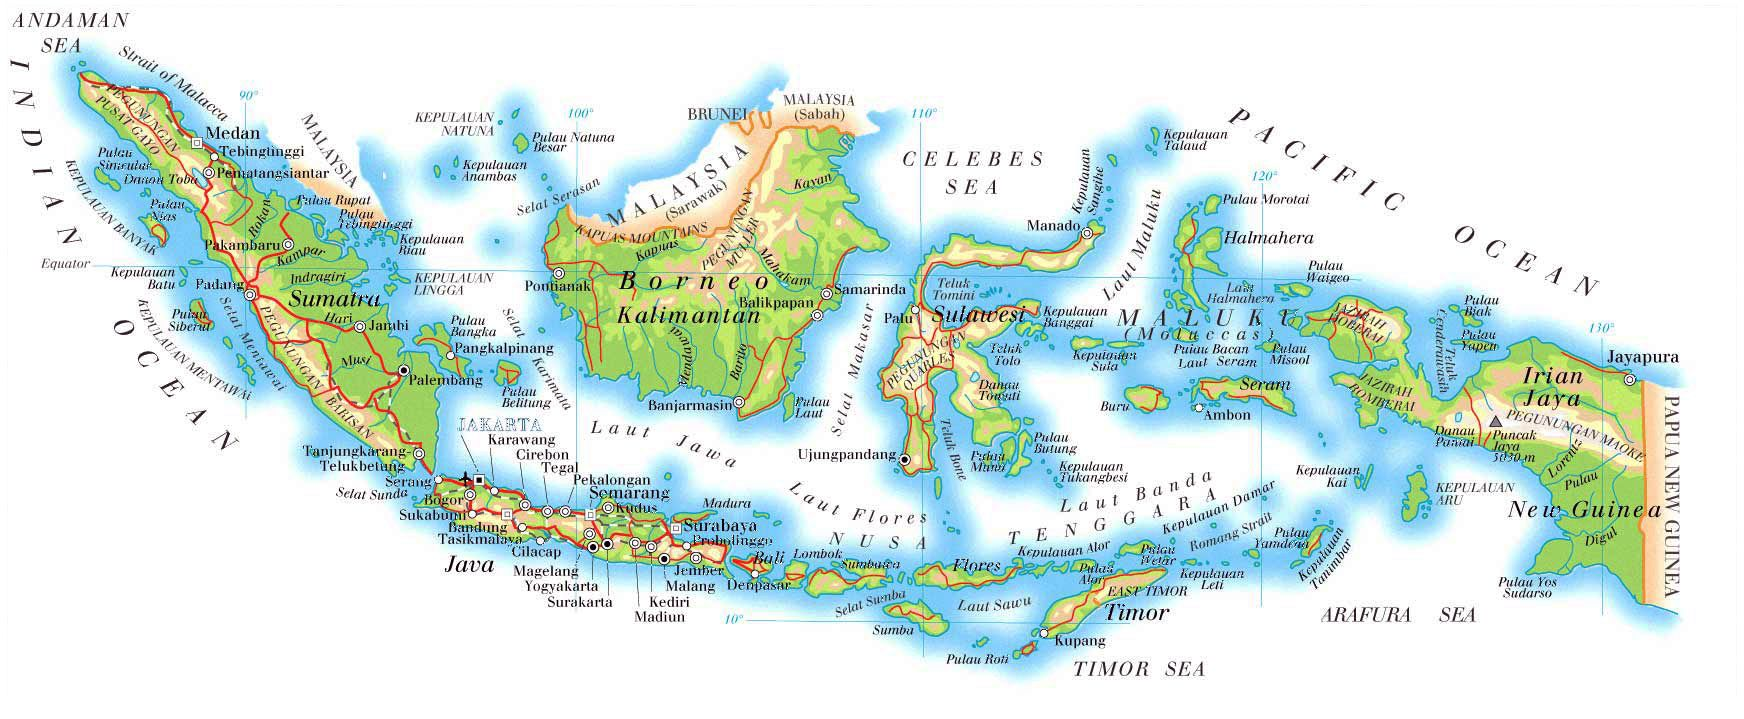 map of indonesia | Physical map of Indonesia. Indonesia physical map Indonesian Map on acholi map, uygur map, pan european map, quebecois map, biblical greek map, maluku island indonesia map, chichewa map, gaulish map, valencian map, sri lankan map, sumatra map, world map, jakarta indonesia map, serb map, india map, haiti map, bangladesh map, java map, zande map, inuit cultures map,